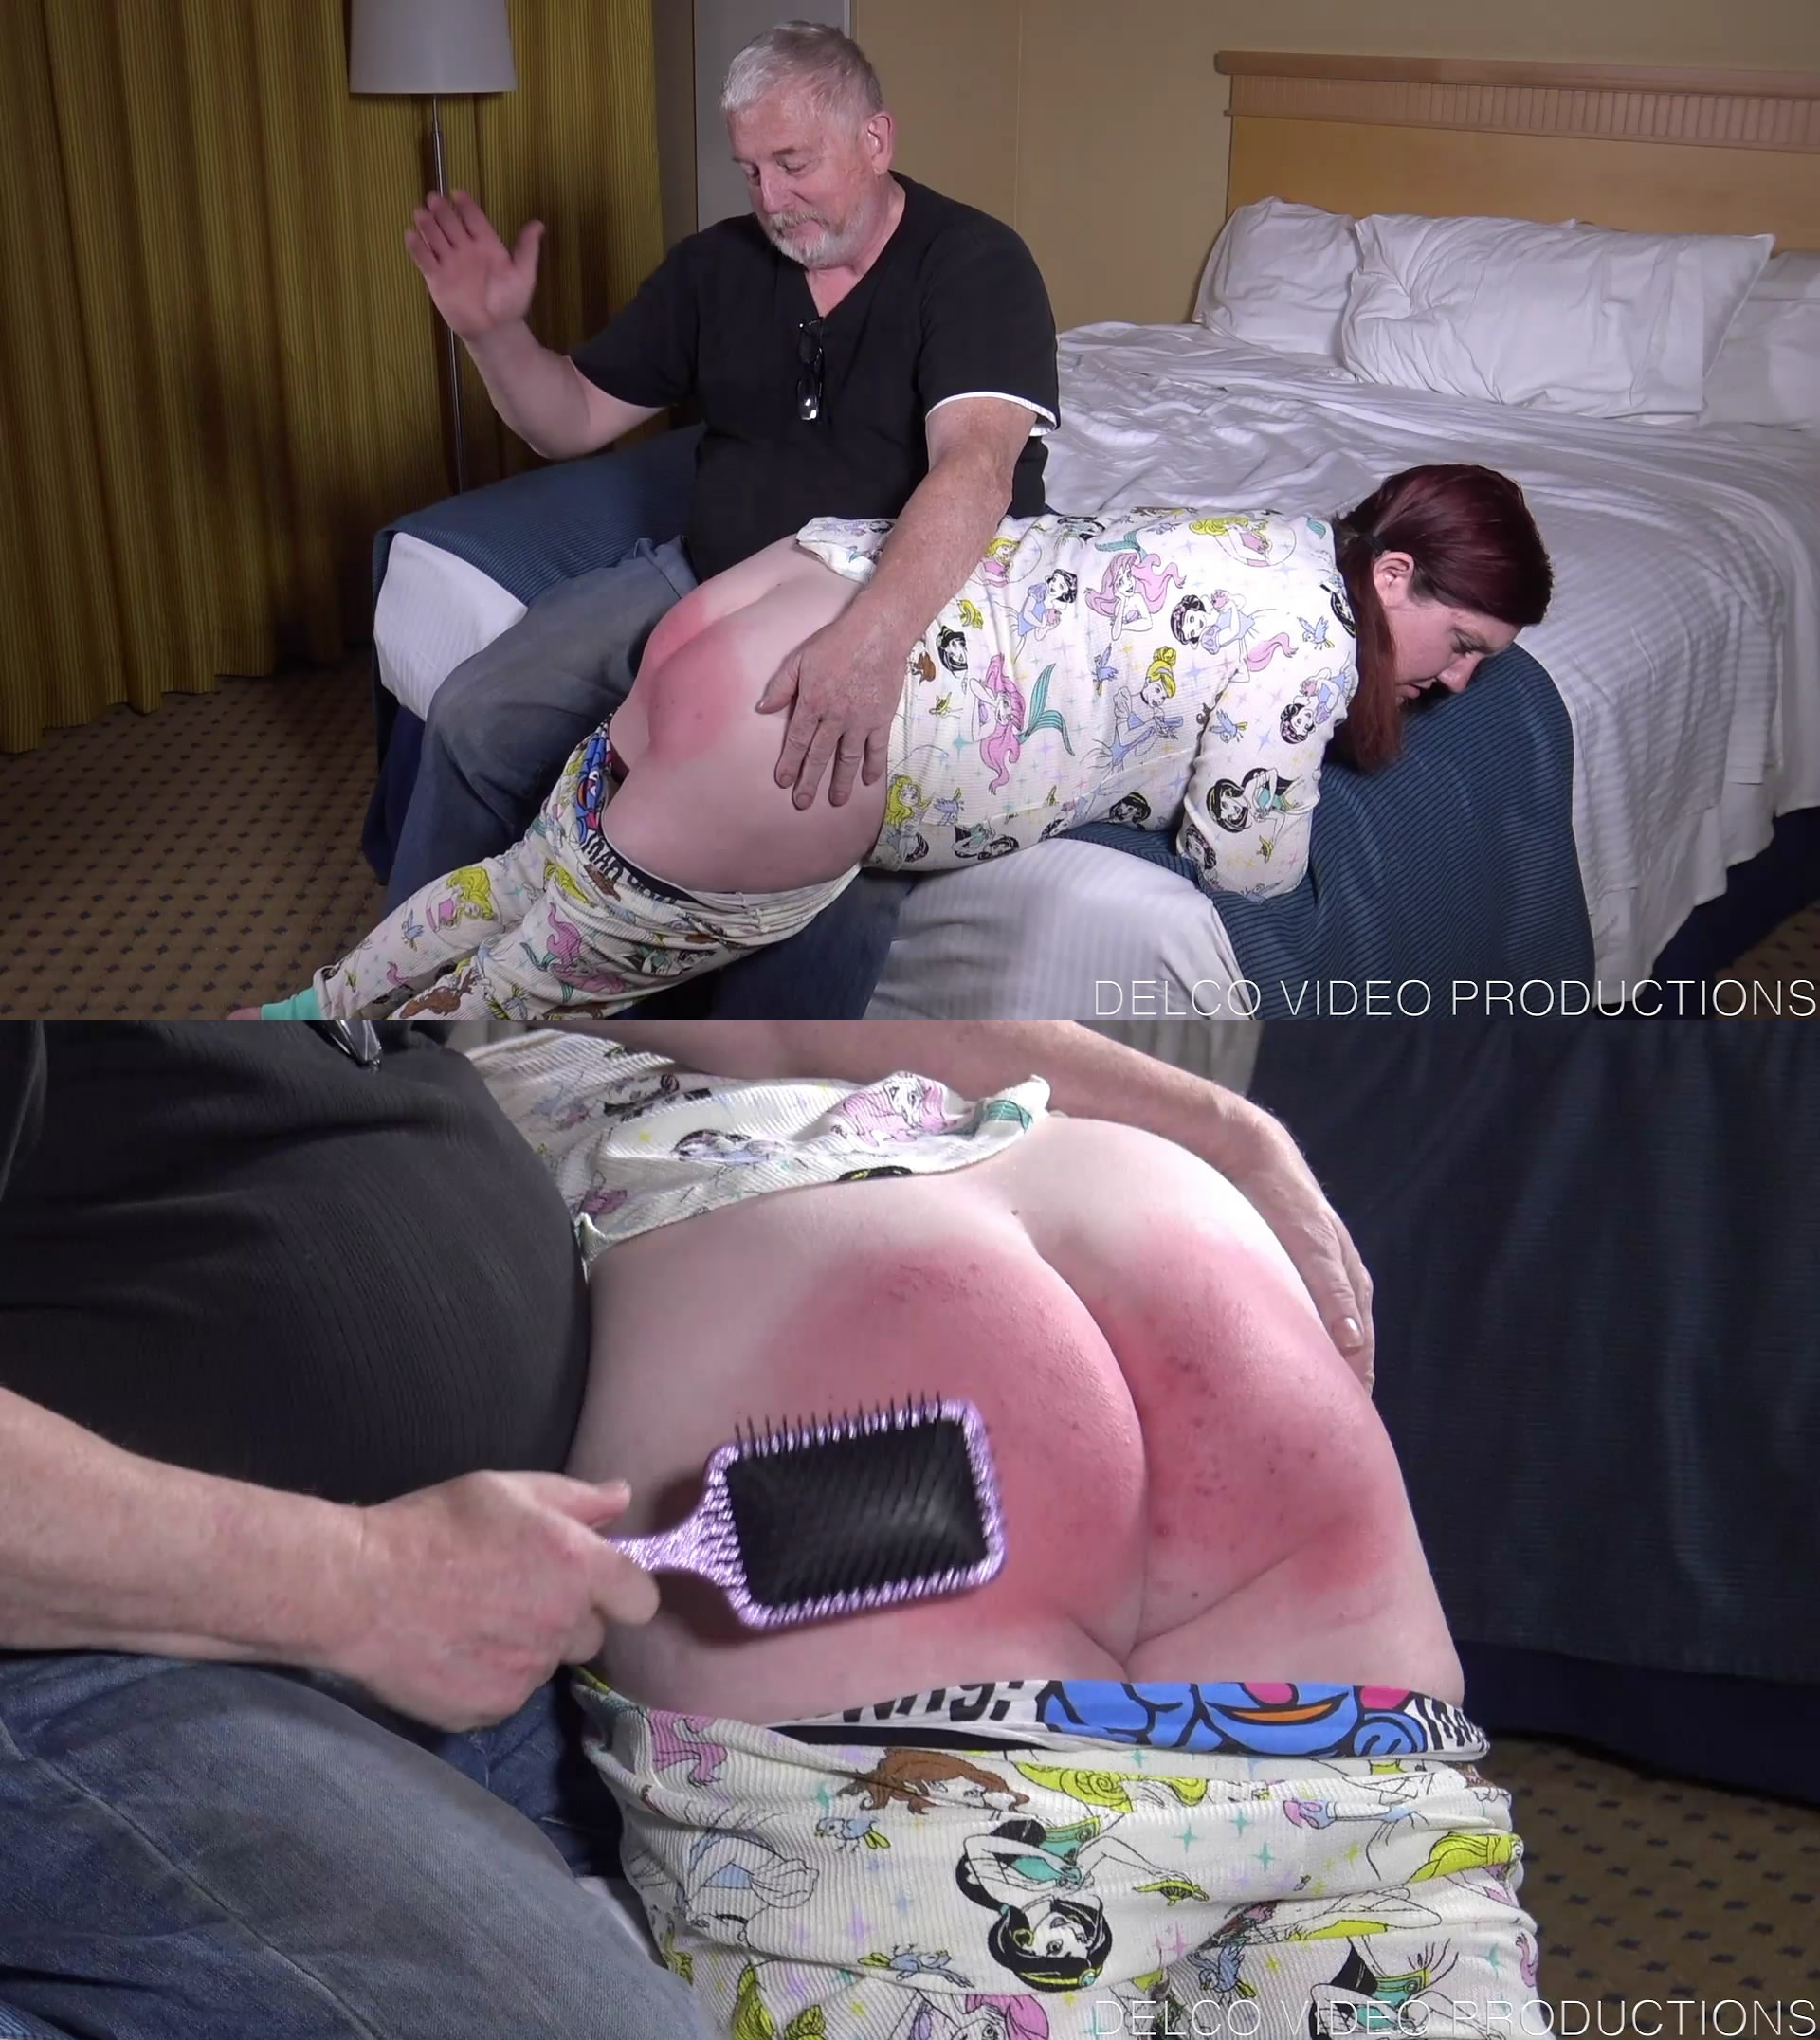 Delco Video Productions – MP4/Full HD – Late Checkout Spanking